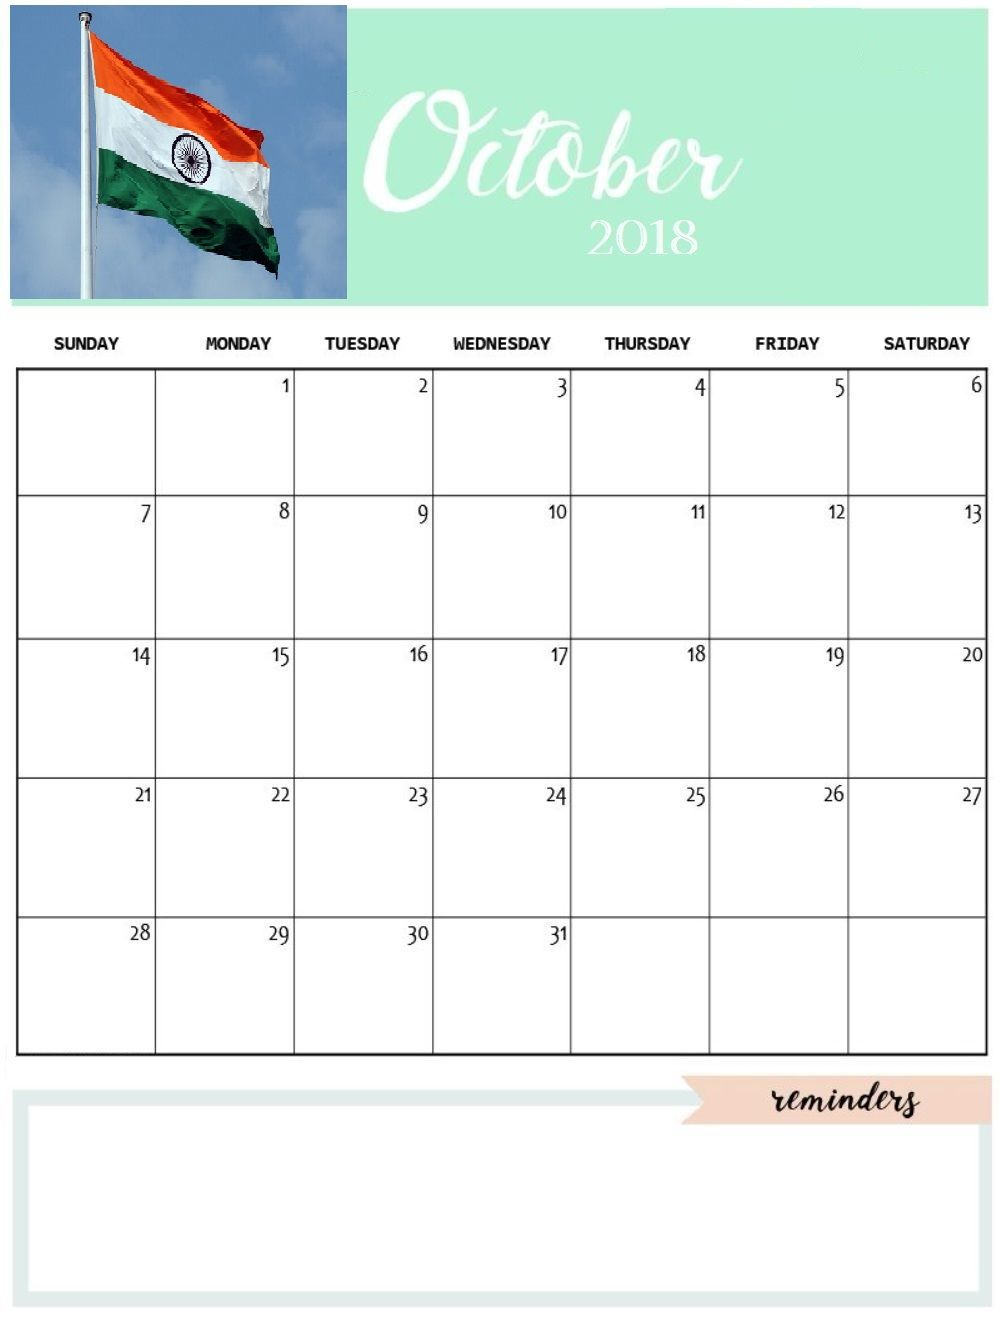 October 2018 Calendar India It Is Easy To Find Out Online For